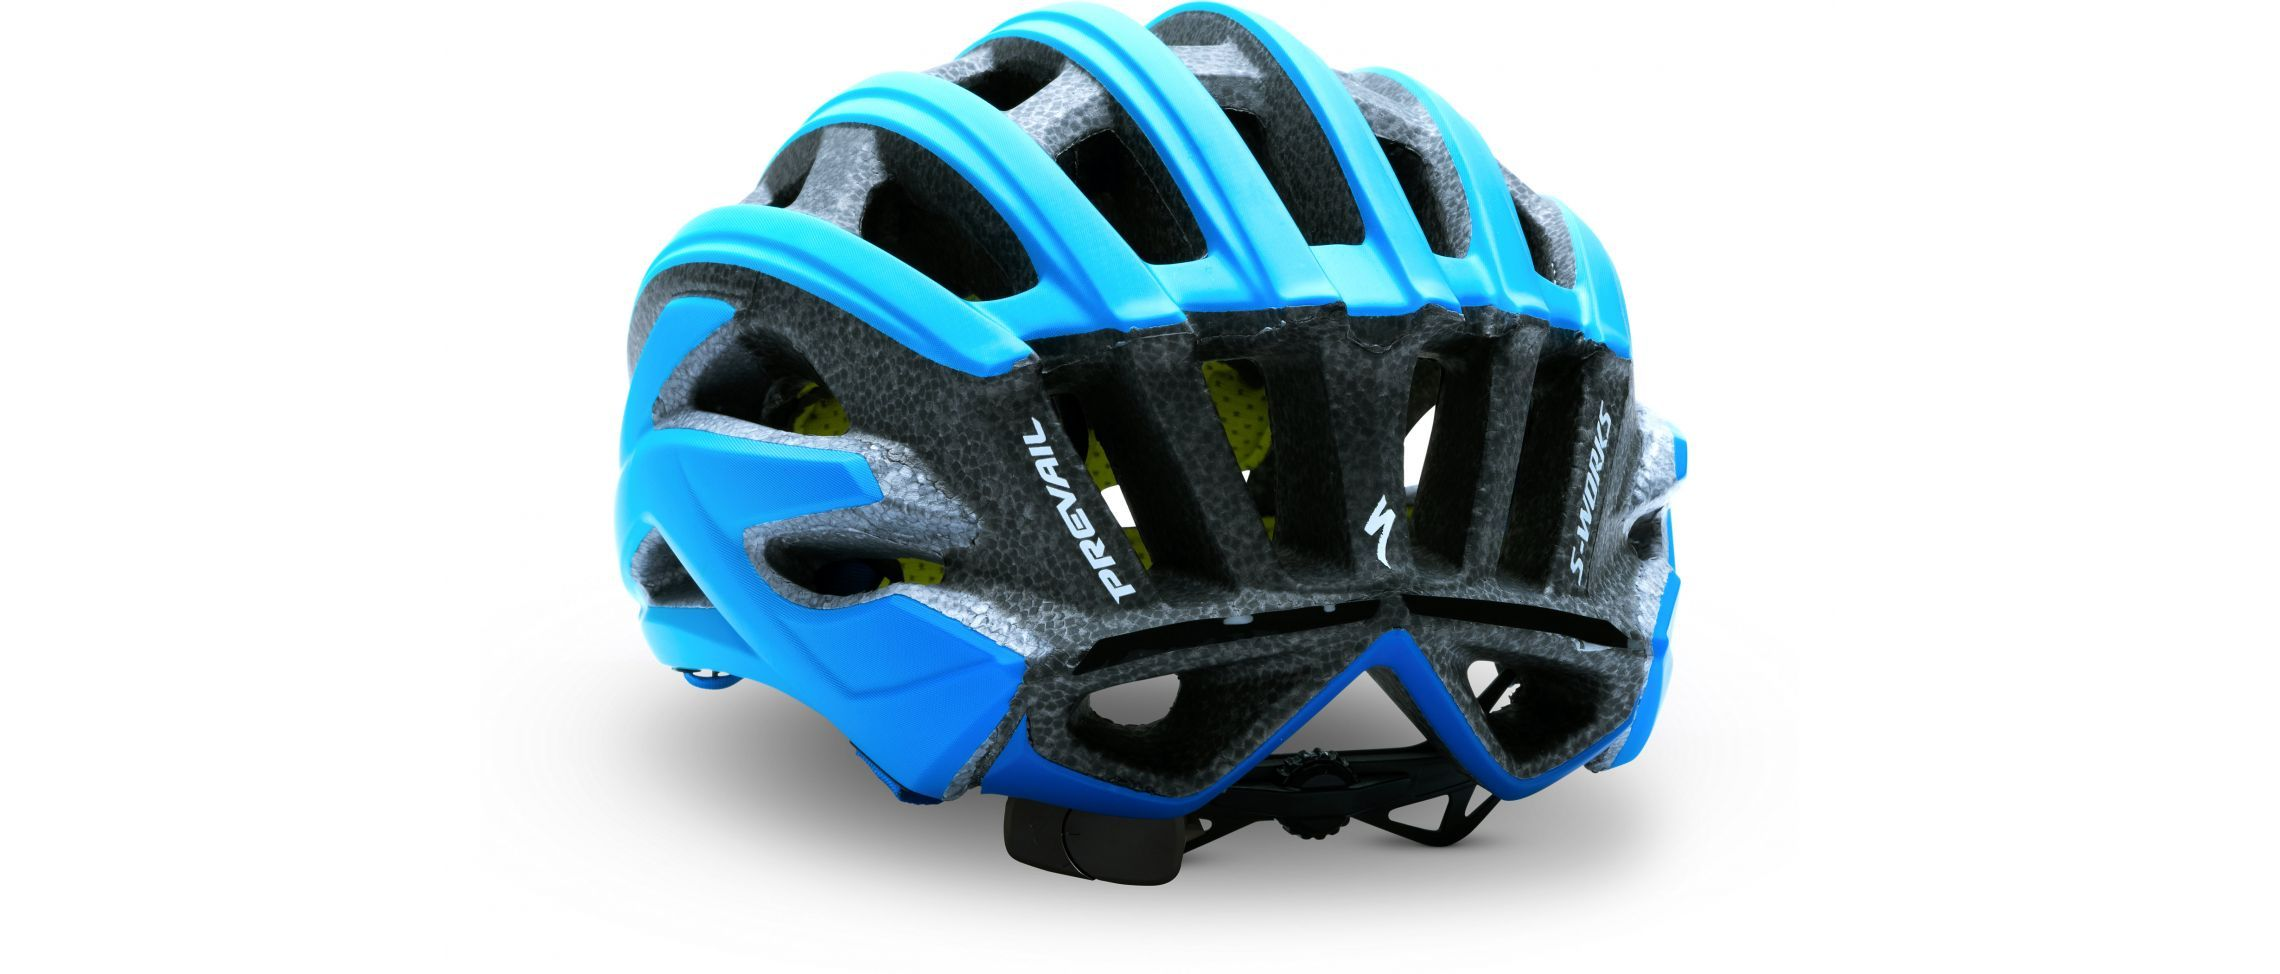 S-Works Prevail II Mips Casco Ciclismo Carretera Specialized Down Under 3 IBKBike.es